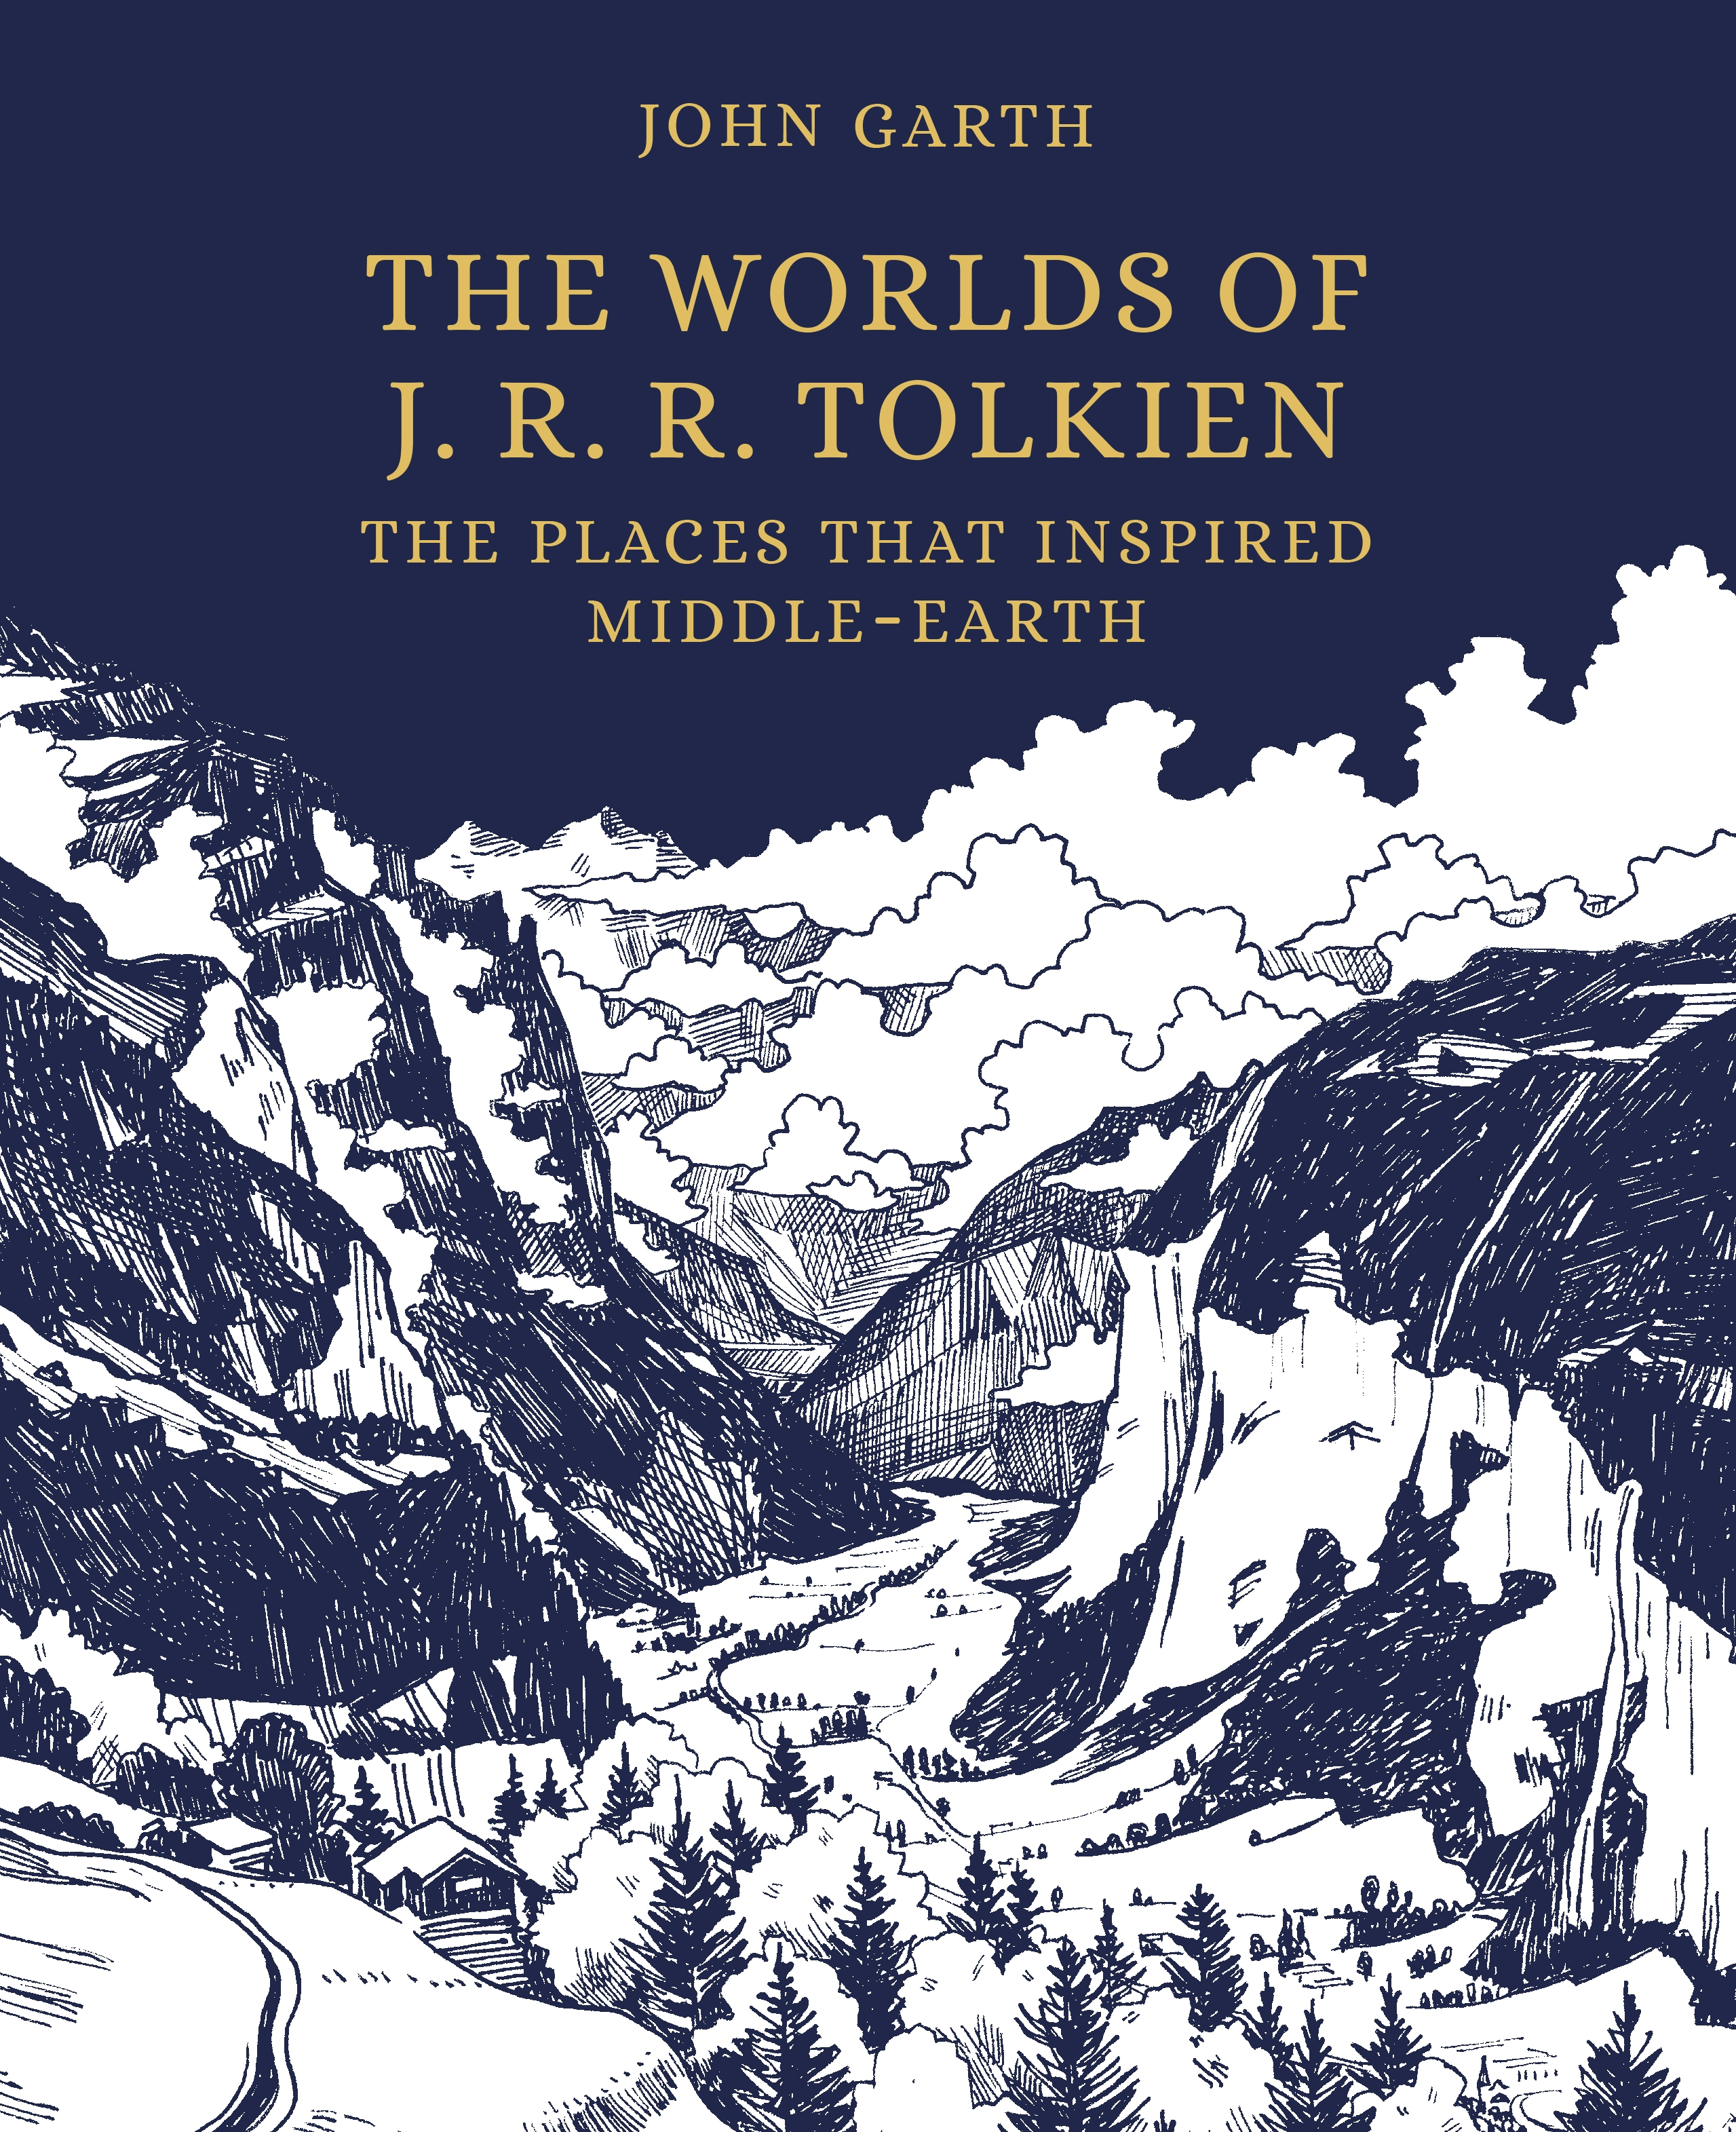 The Worlds of J. R. R. Tolkien | Princeton University Press